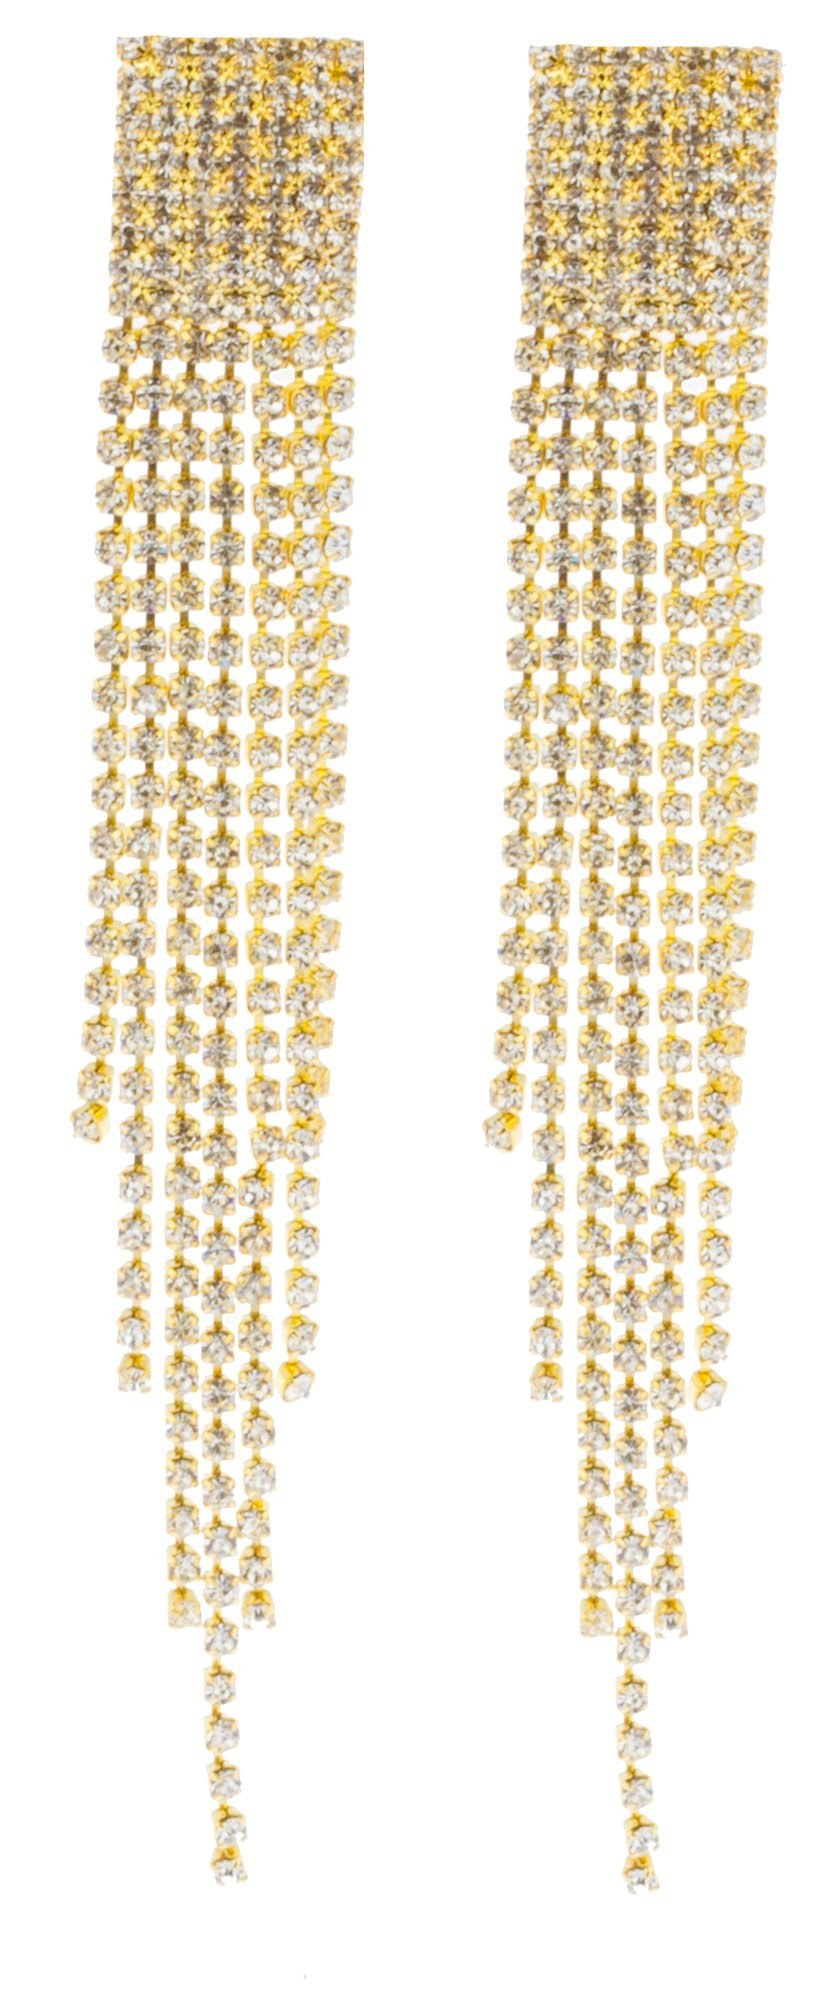 Goldtone 4.5 Inch Chandelier with Tassels and Stones Clip On Earrings (E-1063)